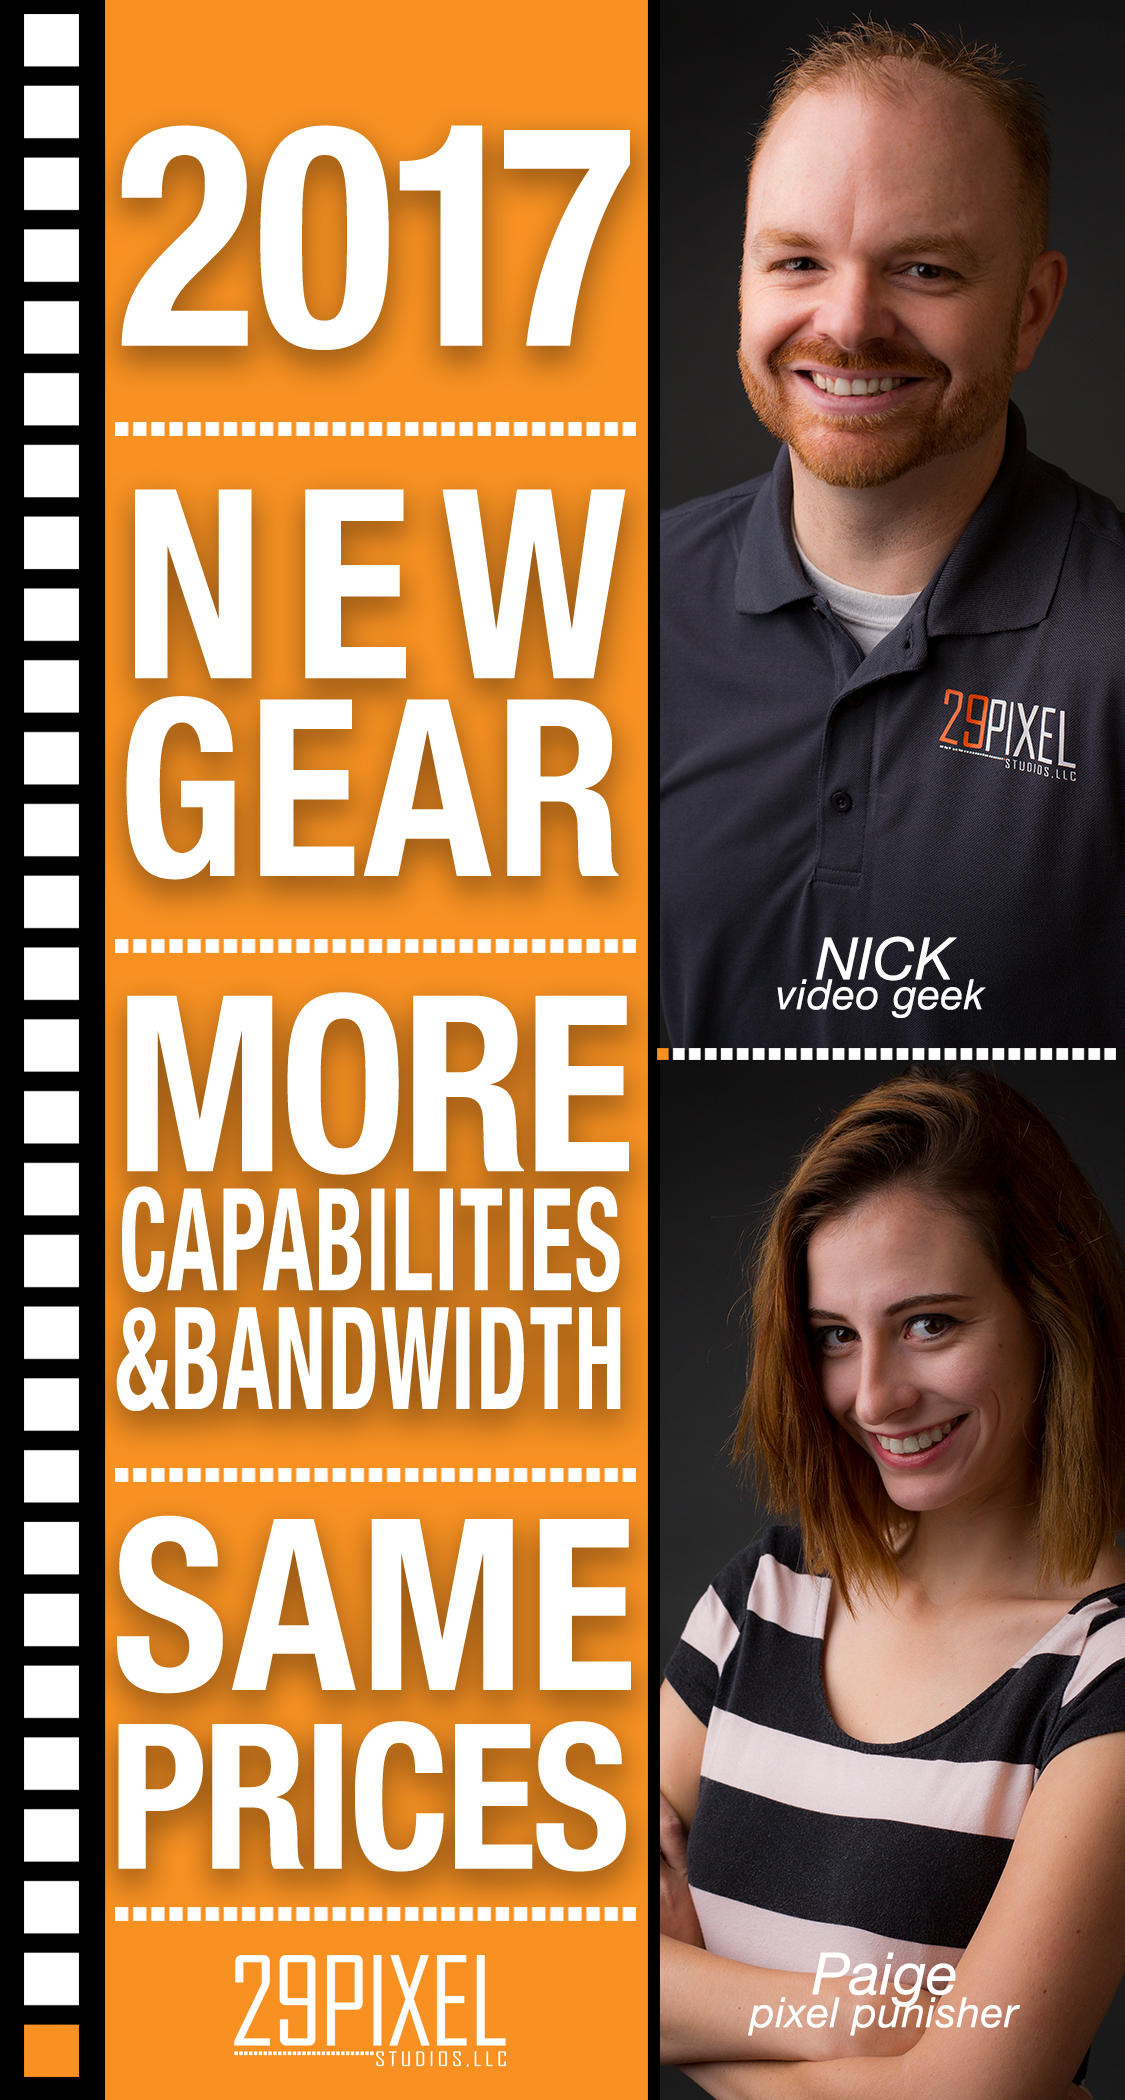 29 Pixel Studios upgrades gear and keeps prices the same! - New gear same prices